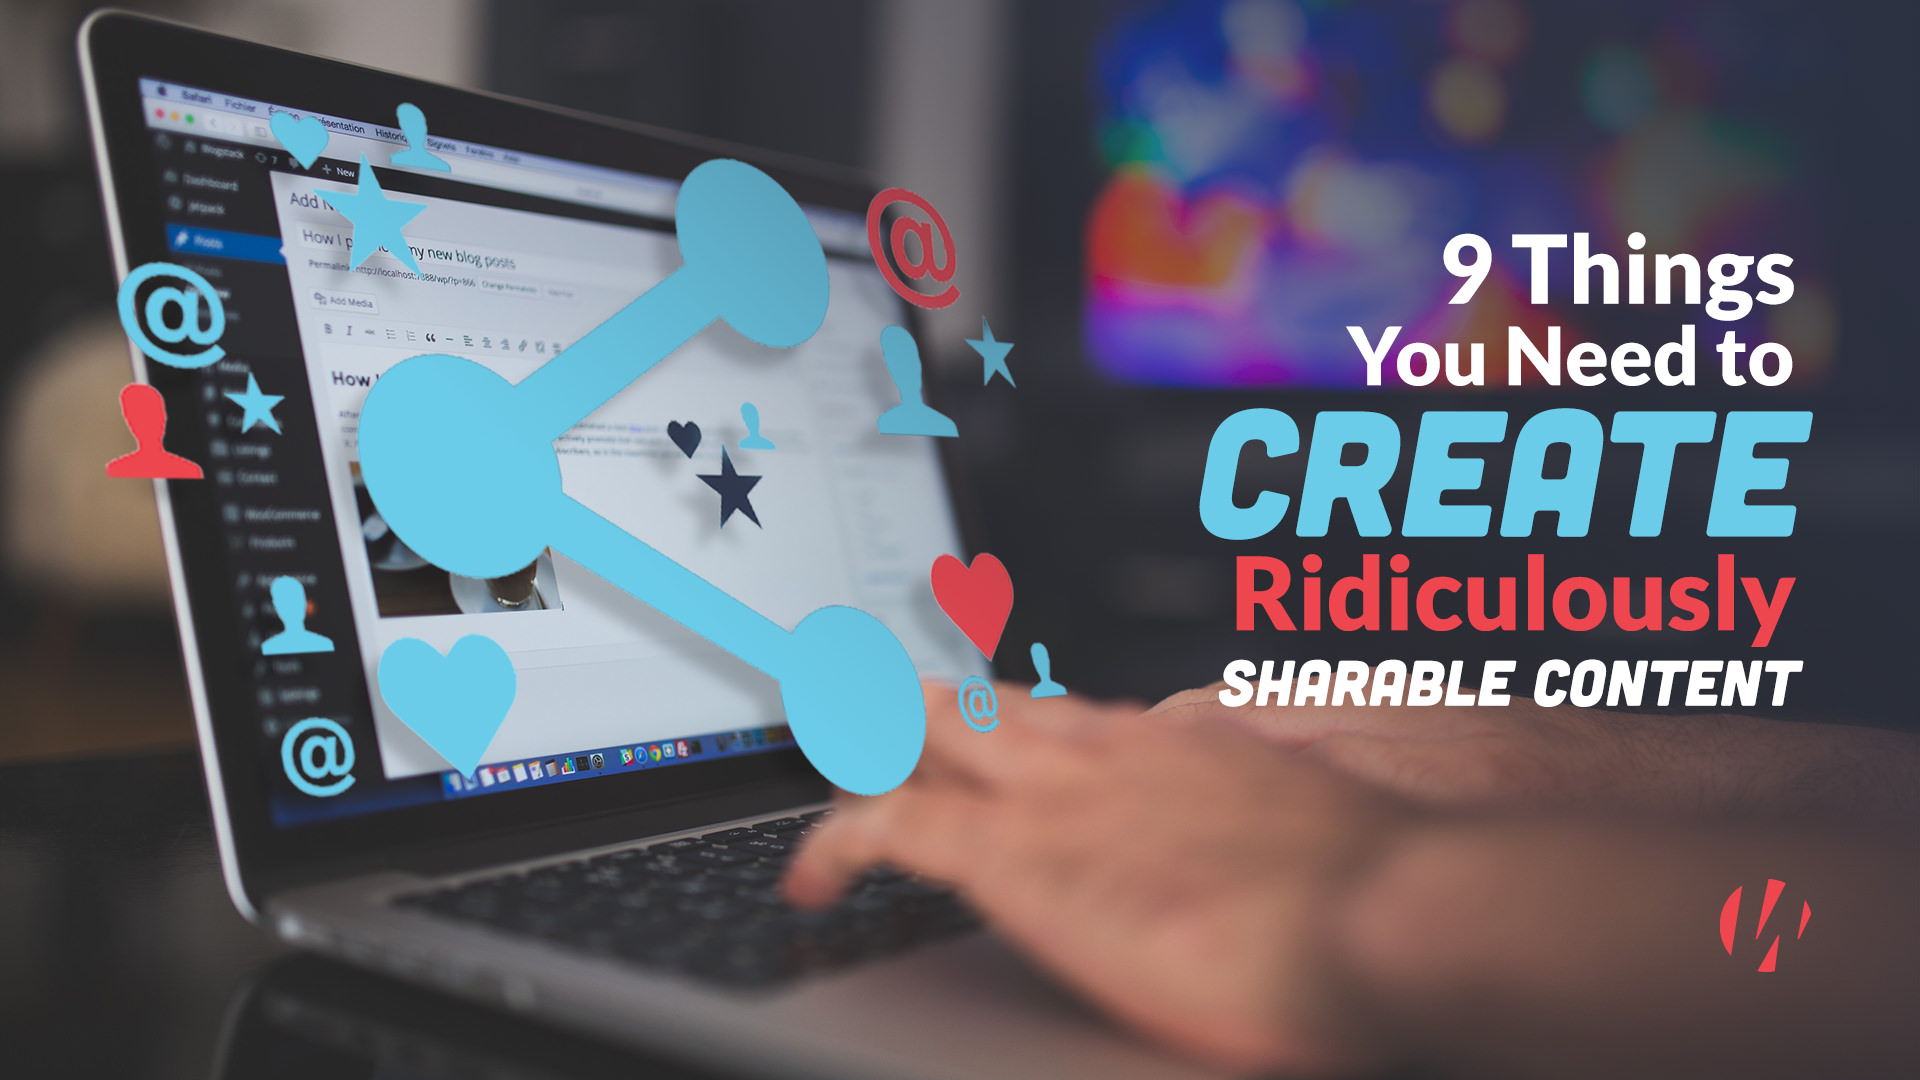 9 Things You Need to Create Ridiculously Shareable Content